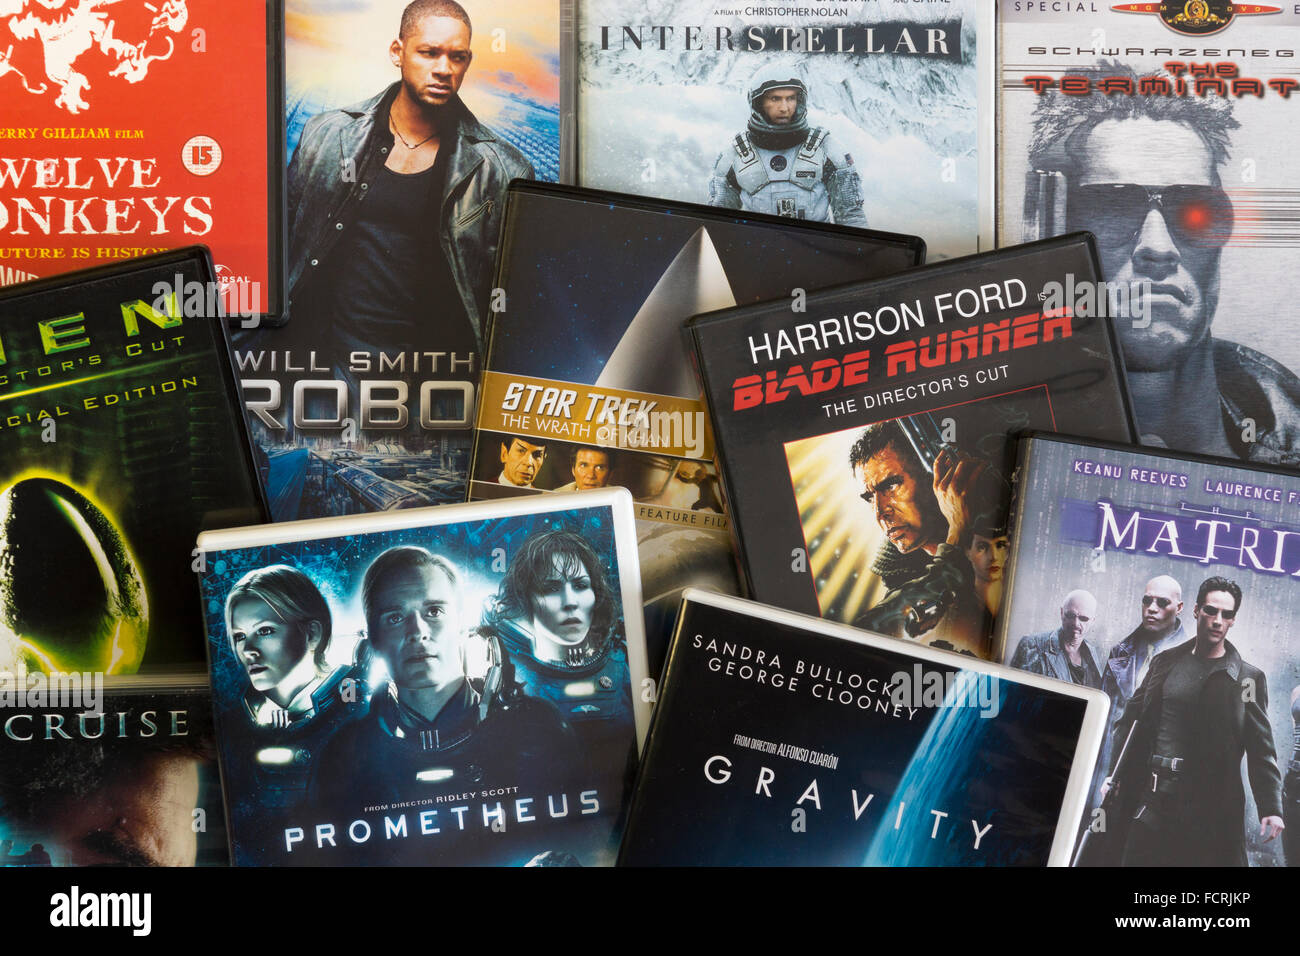 A collection of English language film DVDs showing the genre 'Sci-Fi' - Stock Image